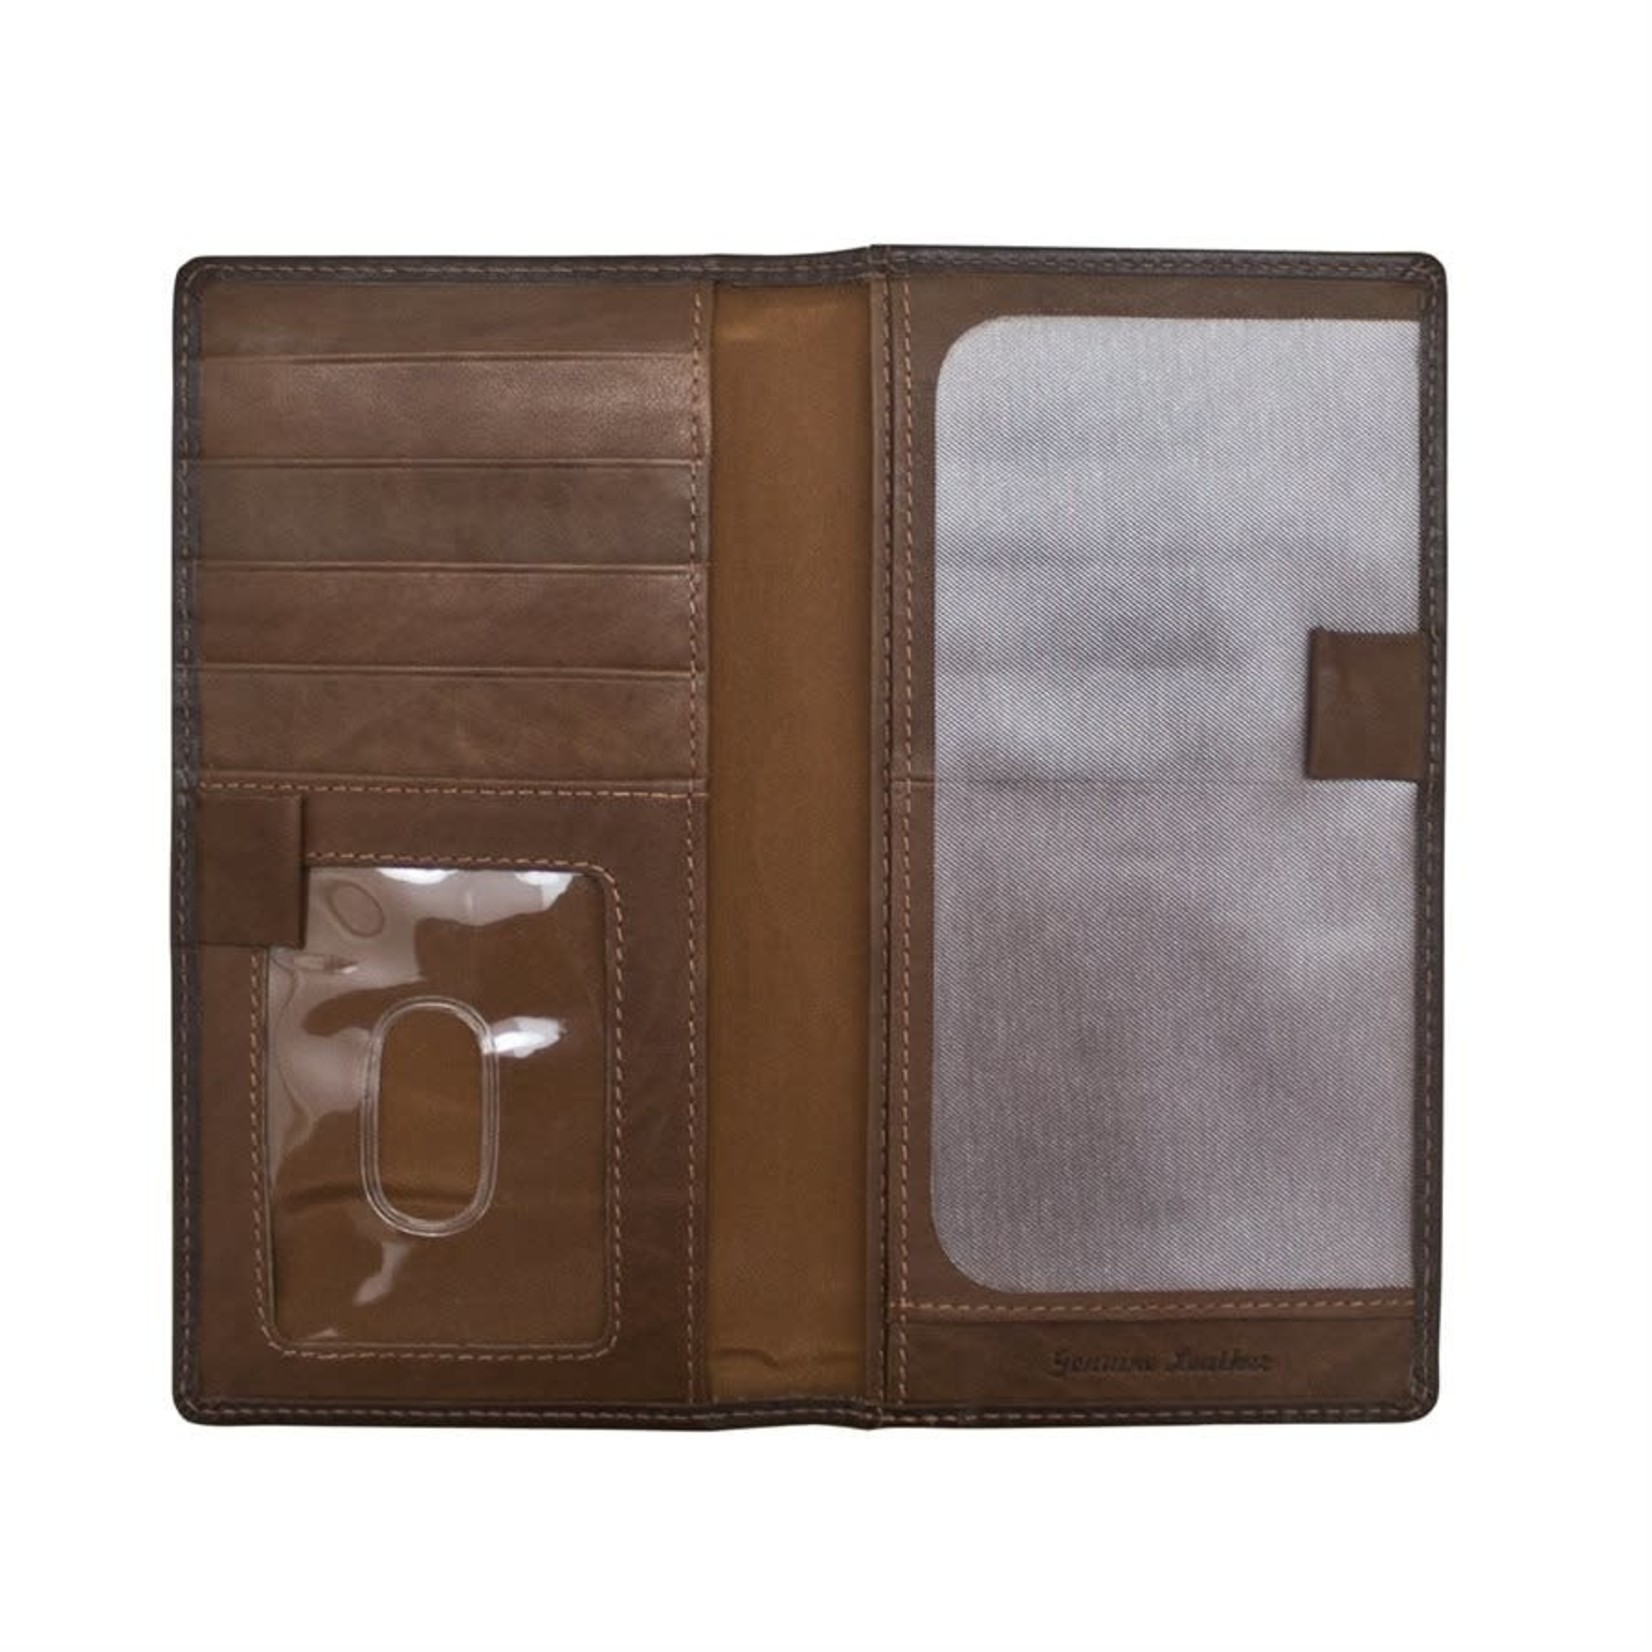 Leather Handbags and Accessories 7406 Brown/Toffee - RFID Checkbook Cover